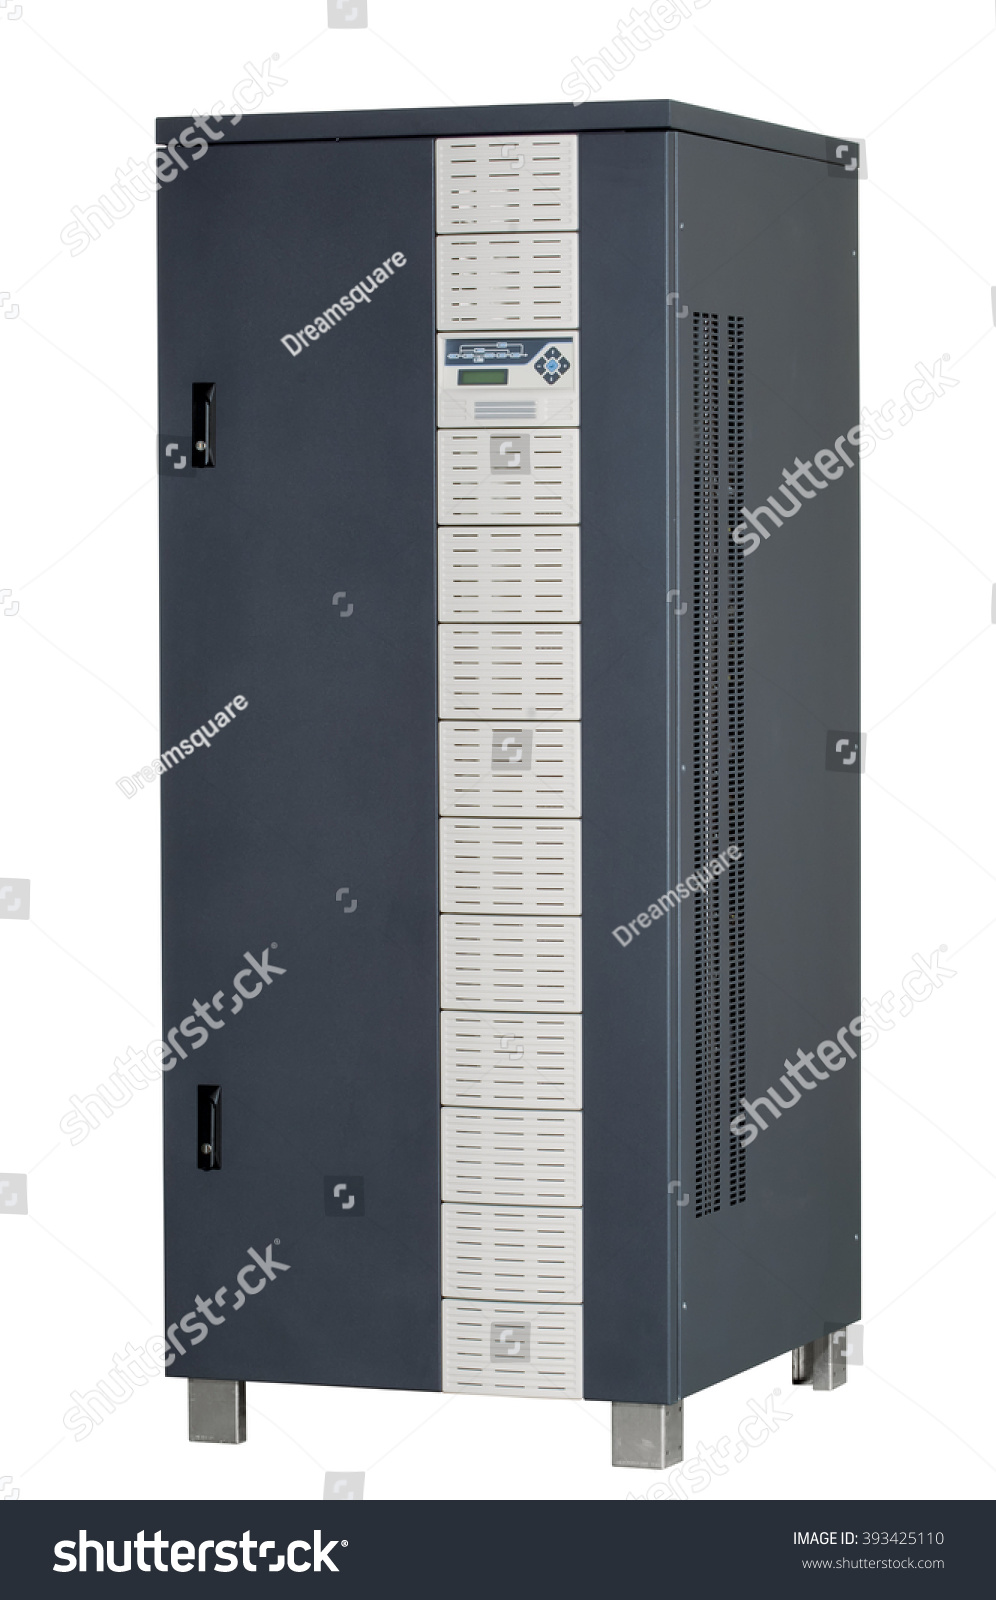 medium resolution of electrical enclosure with its door closed could be electrical circuit breaker fuse box